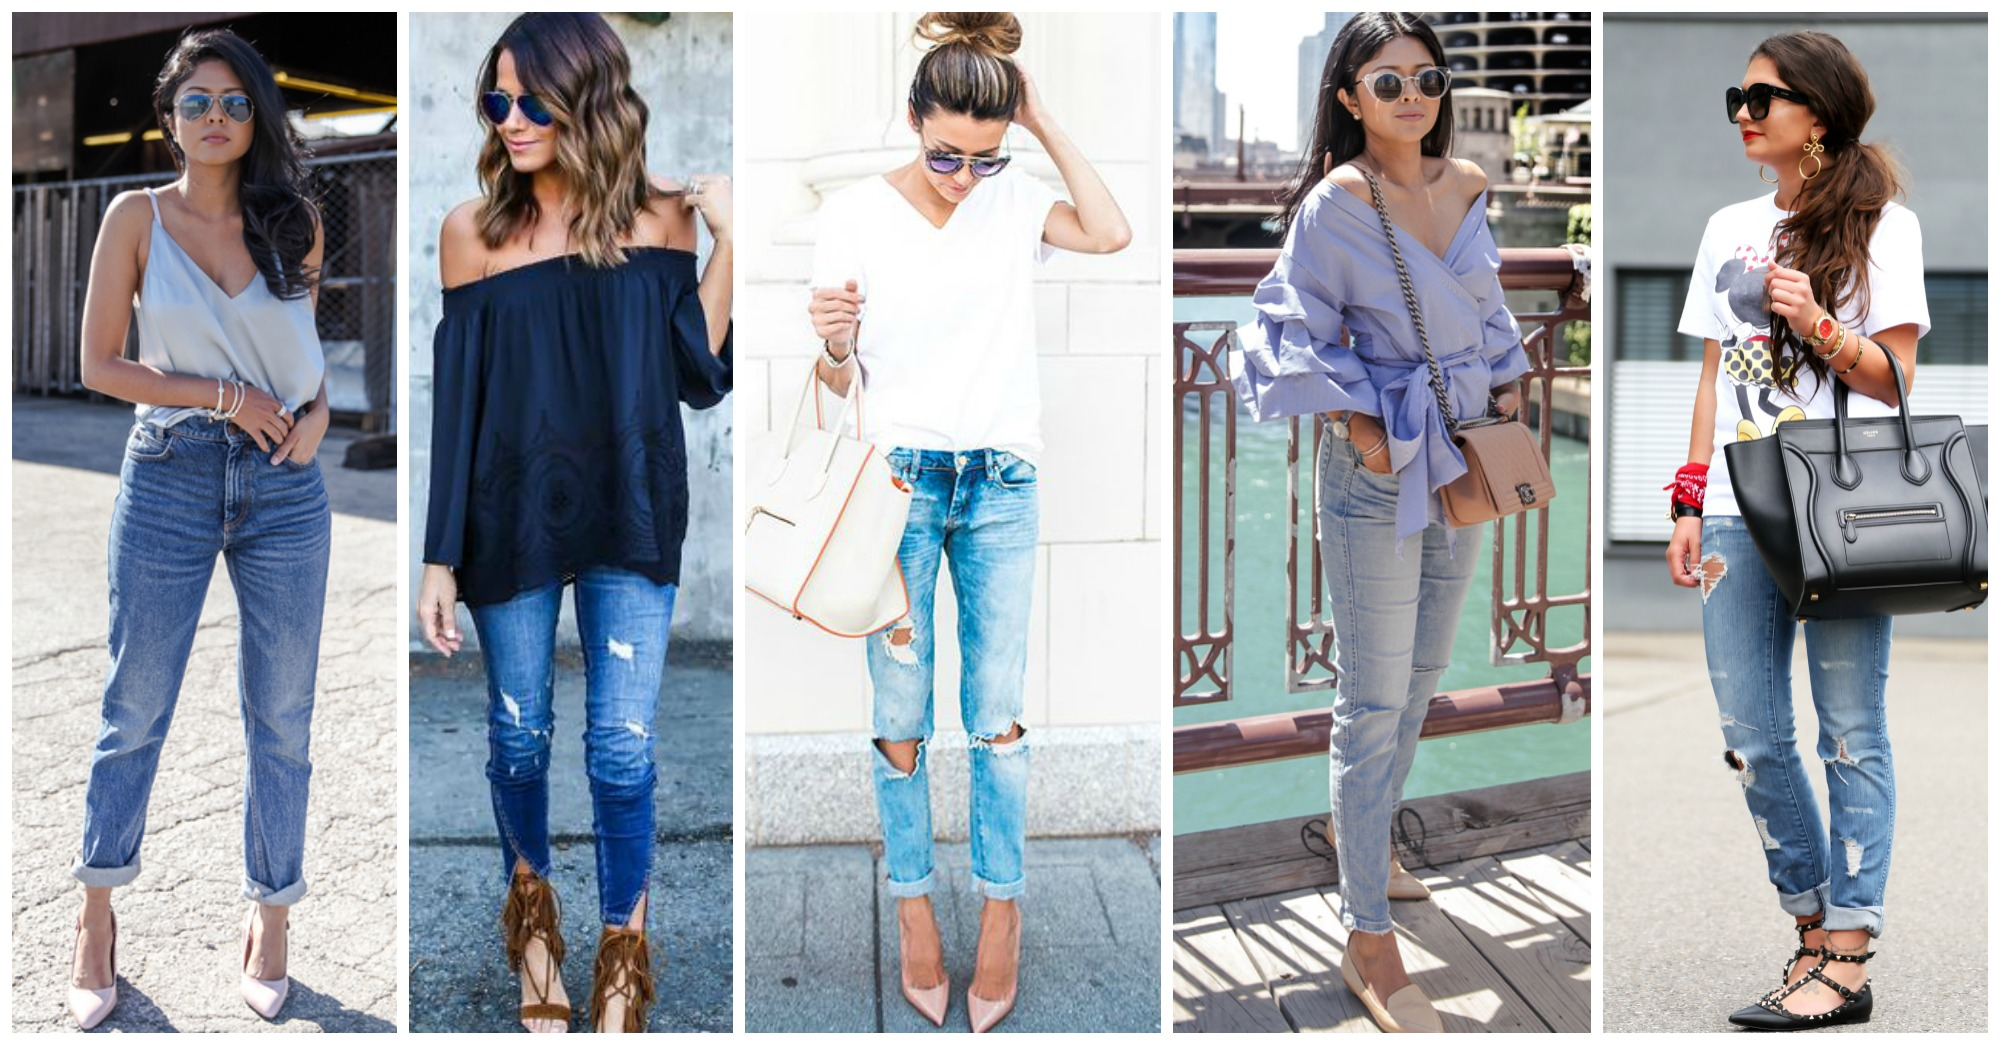 15 Chic Ideas of How to Style Your Denim Jeans This Summer